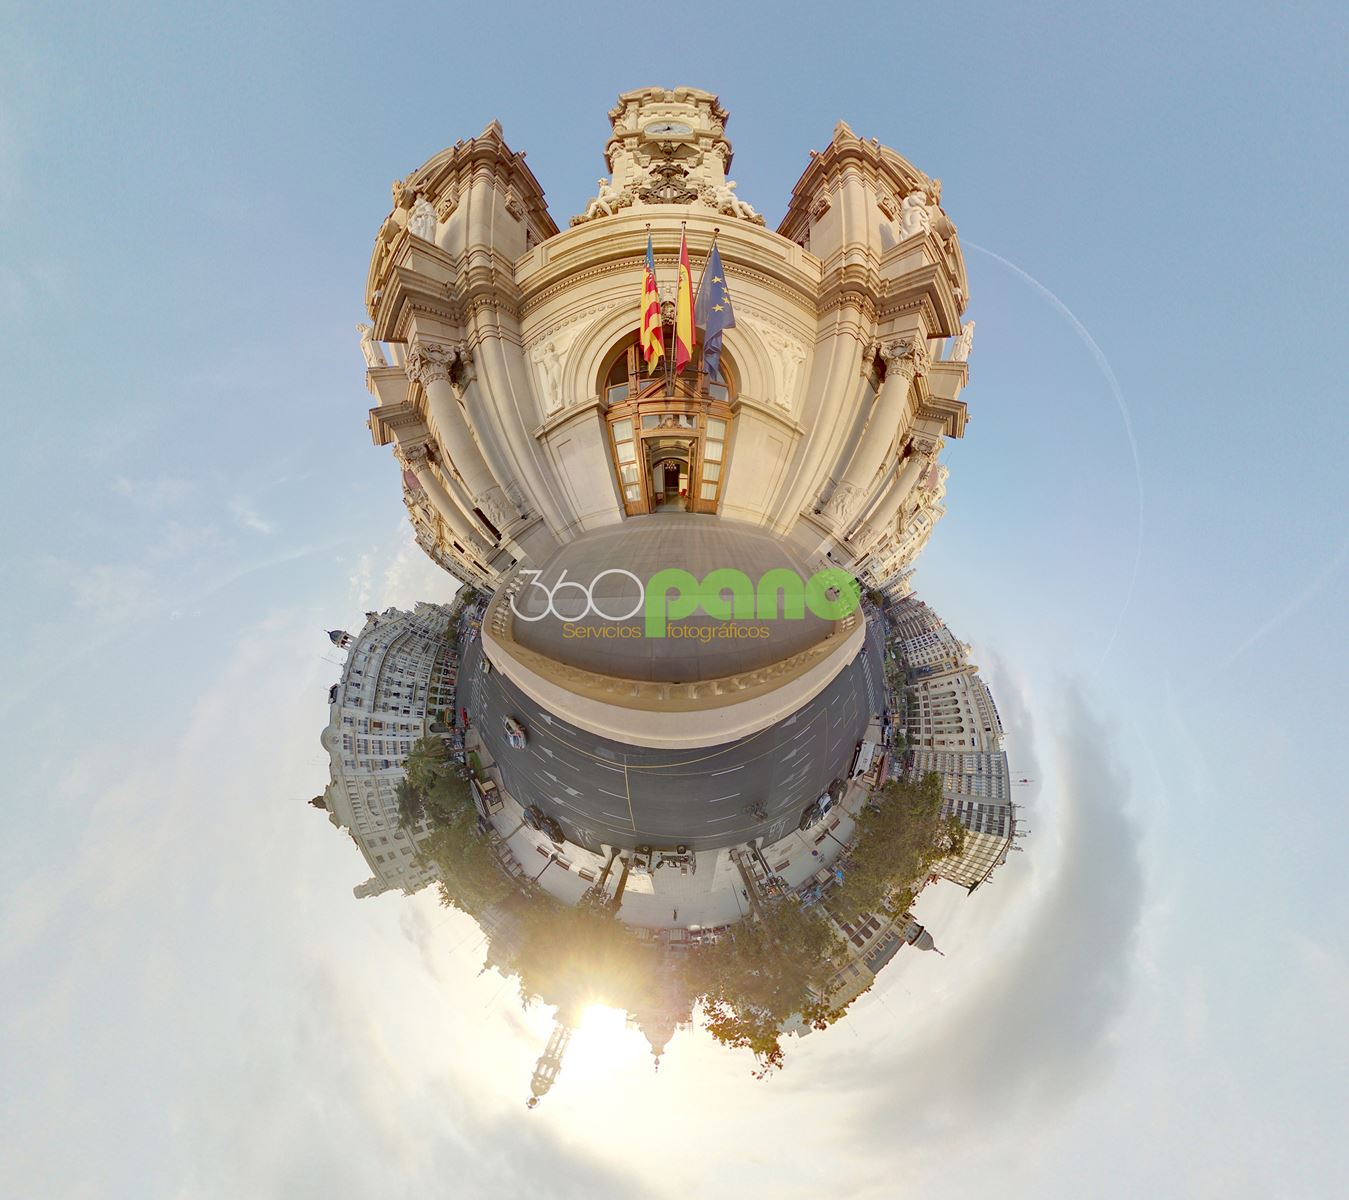 little-planet-ayuntamiento-valencia